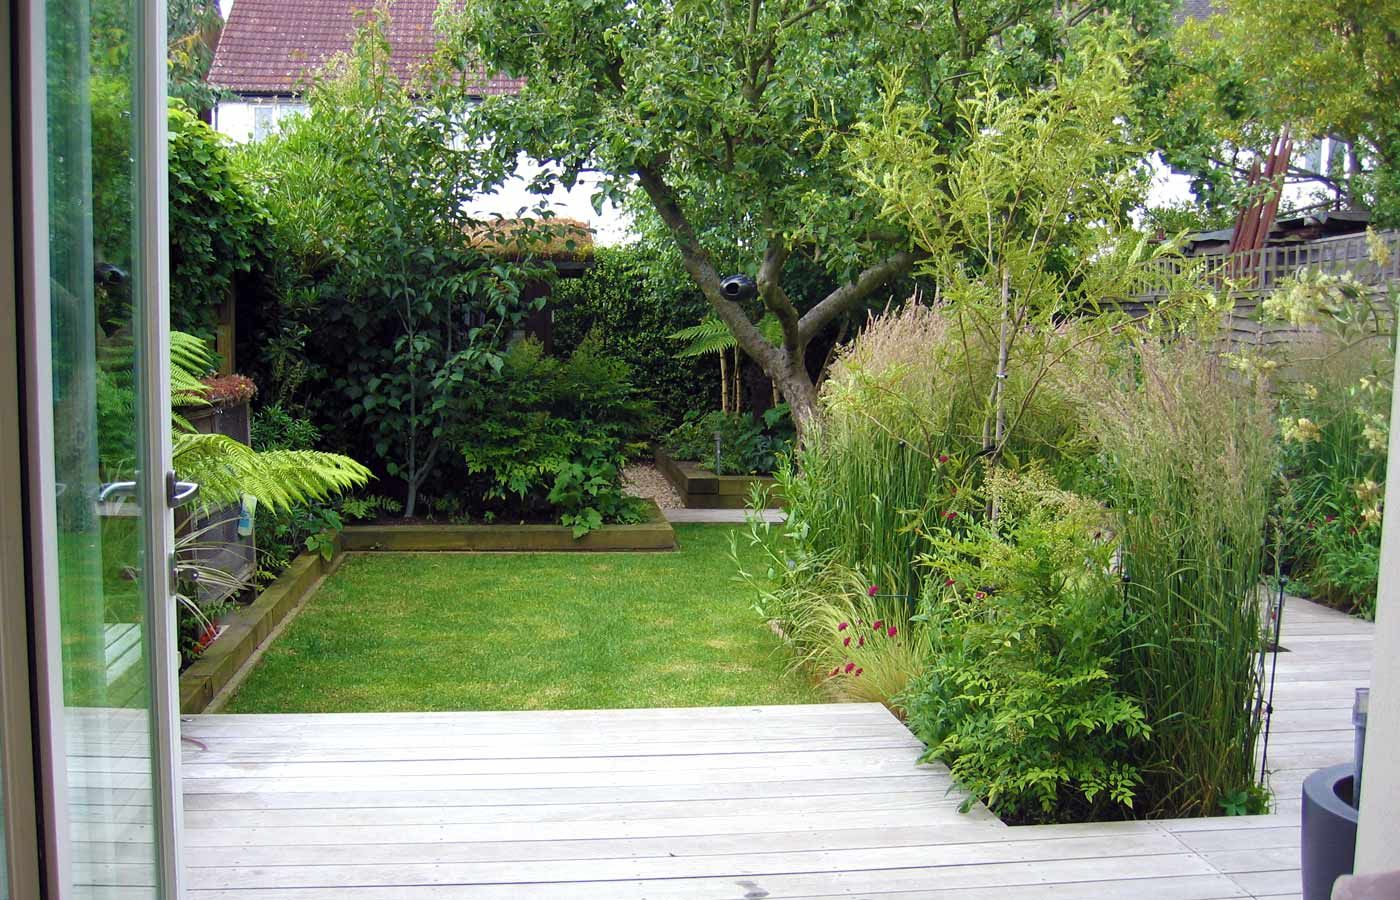 Small trees for lawn lawn and decing in small north for Landscape design london